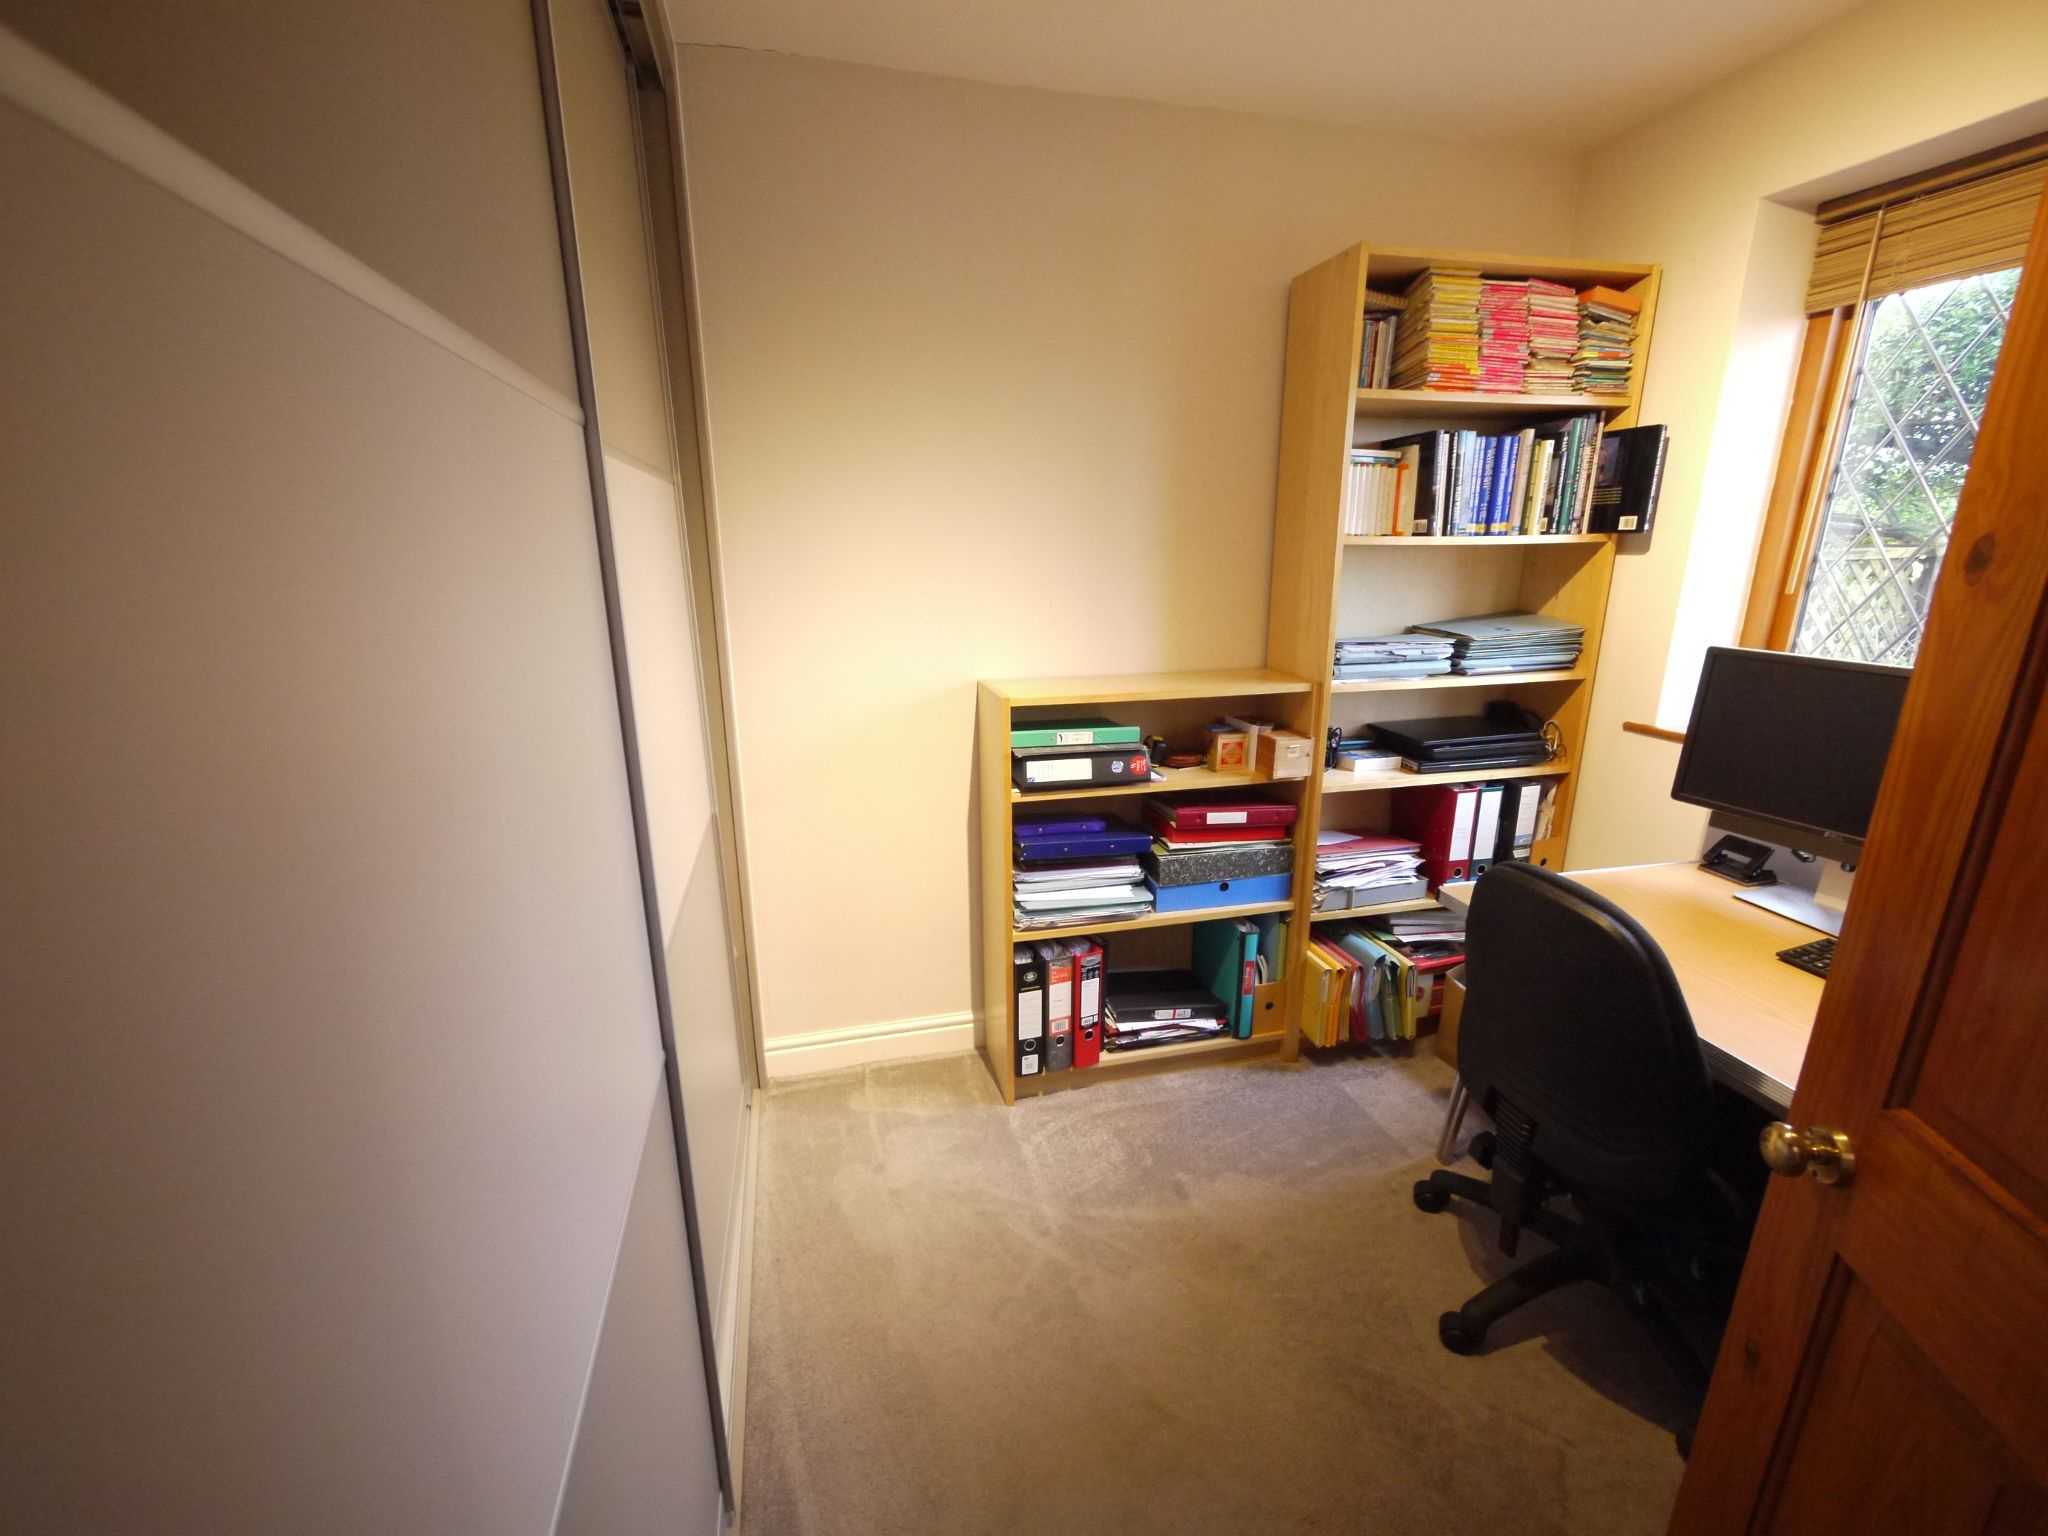 4 bedroom detached house SSTC in Brighouse - Study.